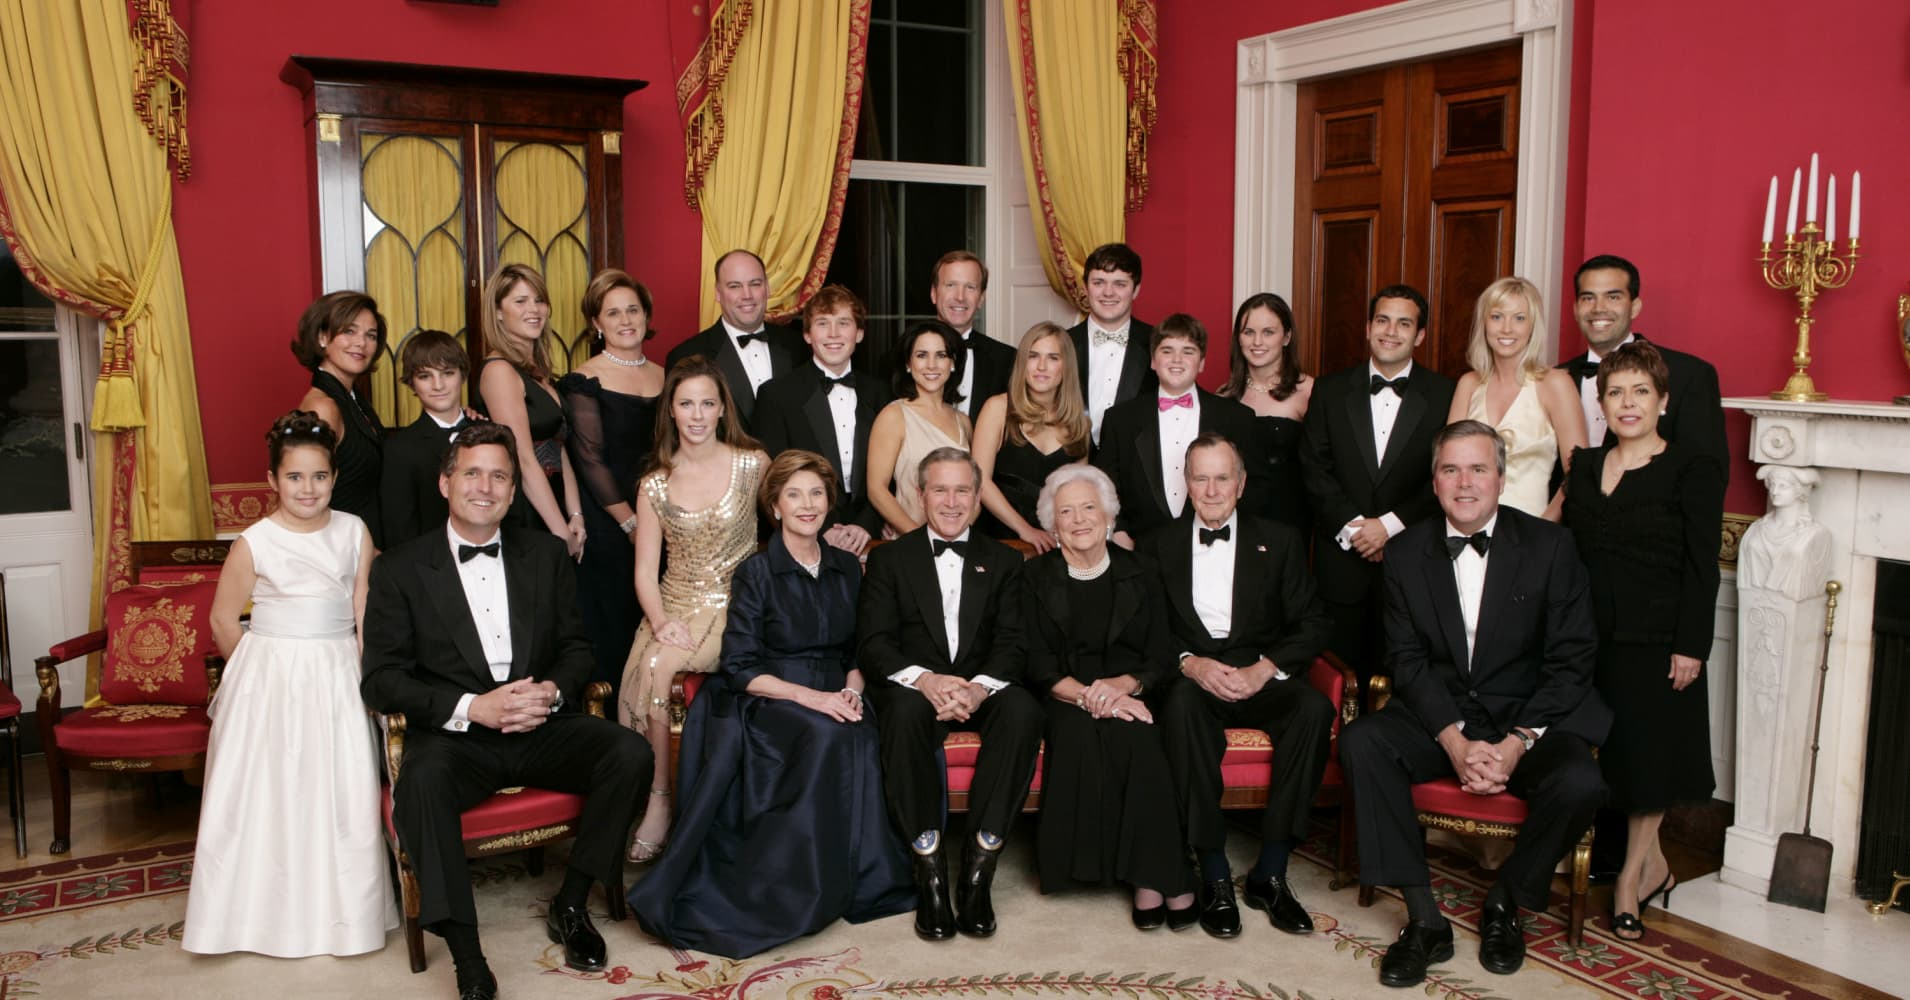 Then-President George W. Bush, first lady Laura Bush, former first lady Barbara Bush and former President George H.W. Bush sit surrounded by family in the Red Room of the White House, January 6, 2005, in Washington. Friends and family joined former President Bush and Barbara Bush in celebrating their 60th wedding anniversary at a dinner. Also pictured are:  (L to R) Georgia Grace Koch, Margaret Bush, Walker Bush, Marvin Bush, Jenna Bush, Doro Koch, Barbara Bush, Robert P. Koch, Pierce M. Bush, Maria Bush, Neil Bush, Ashley Bush, Sam LeBlond, Robert Koch, Nancy Ellis LeBlond, John Ellis Bush Jr., Florida Gov. John Ellis 'Jeb' Bush, Mandi Bush, George P. Bush, and Columba Bush.  (Photo by Eric Draper/White House via Getty Images)